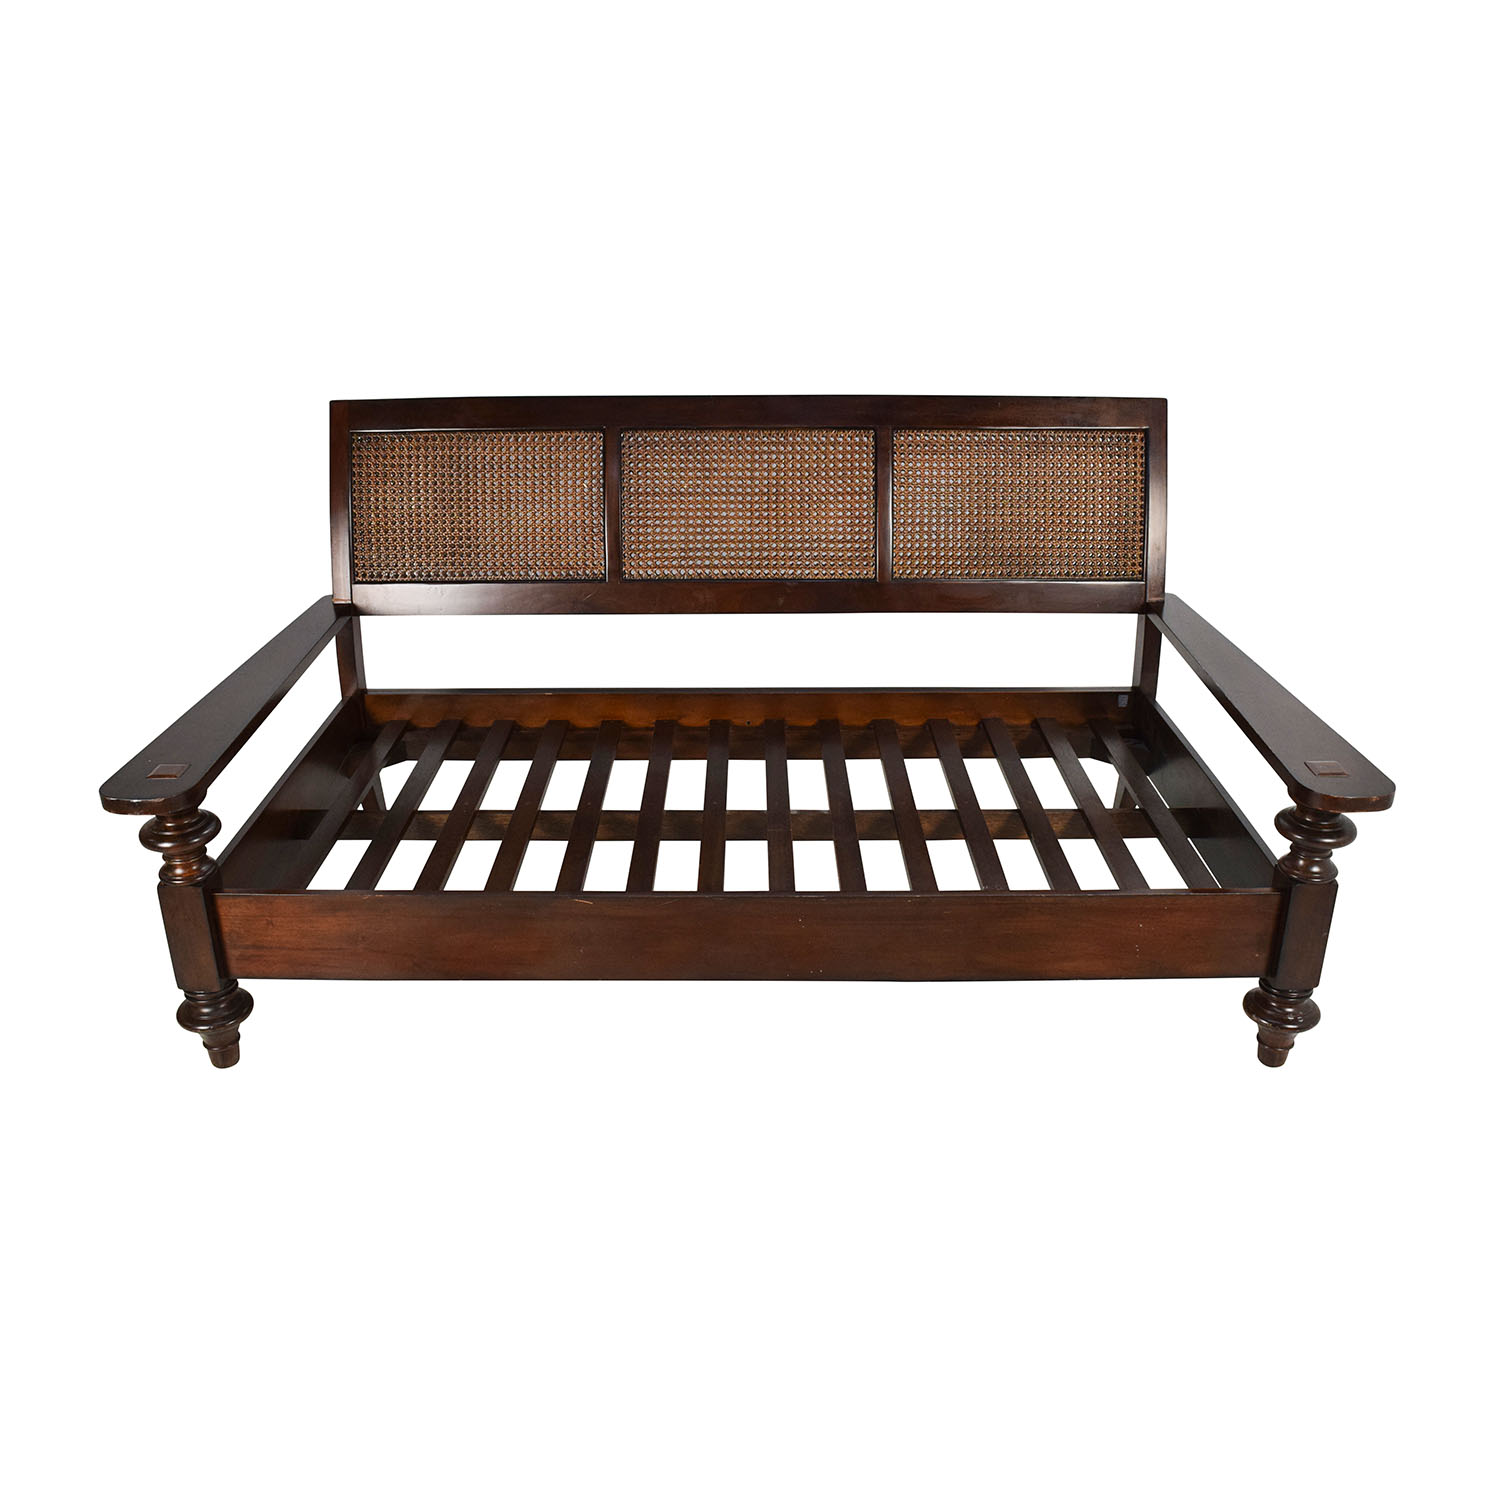 - 65% OFF - Pottery Barn Pottery Barn Montego Daybed / Beds